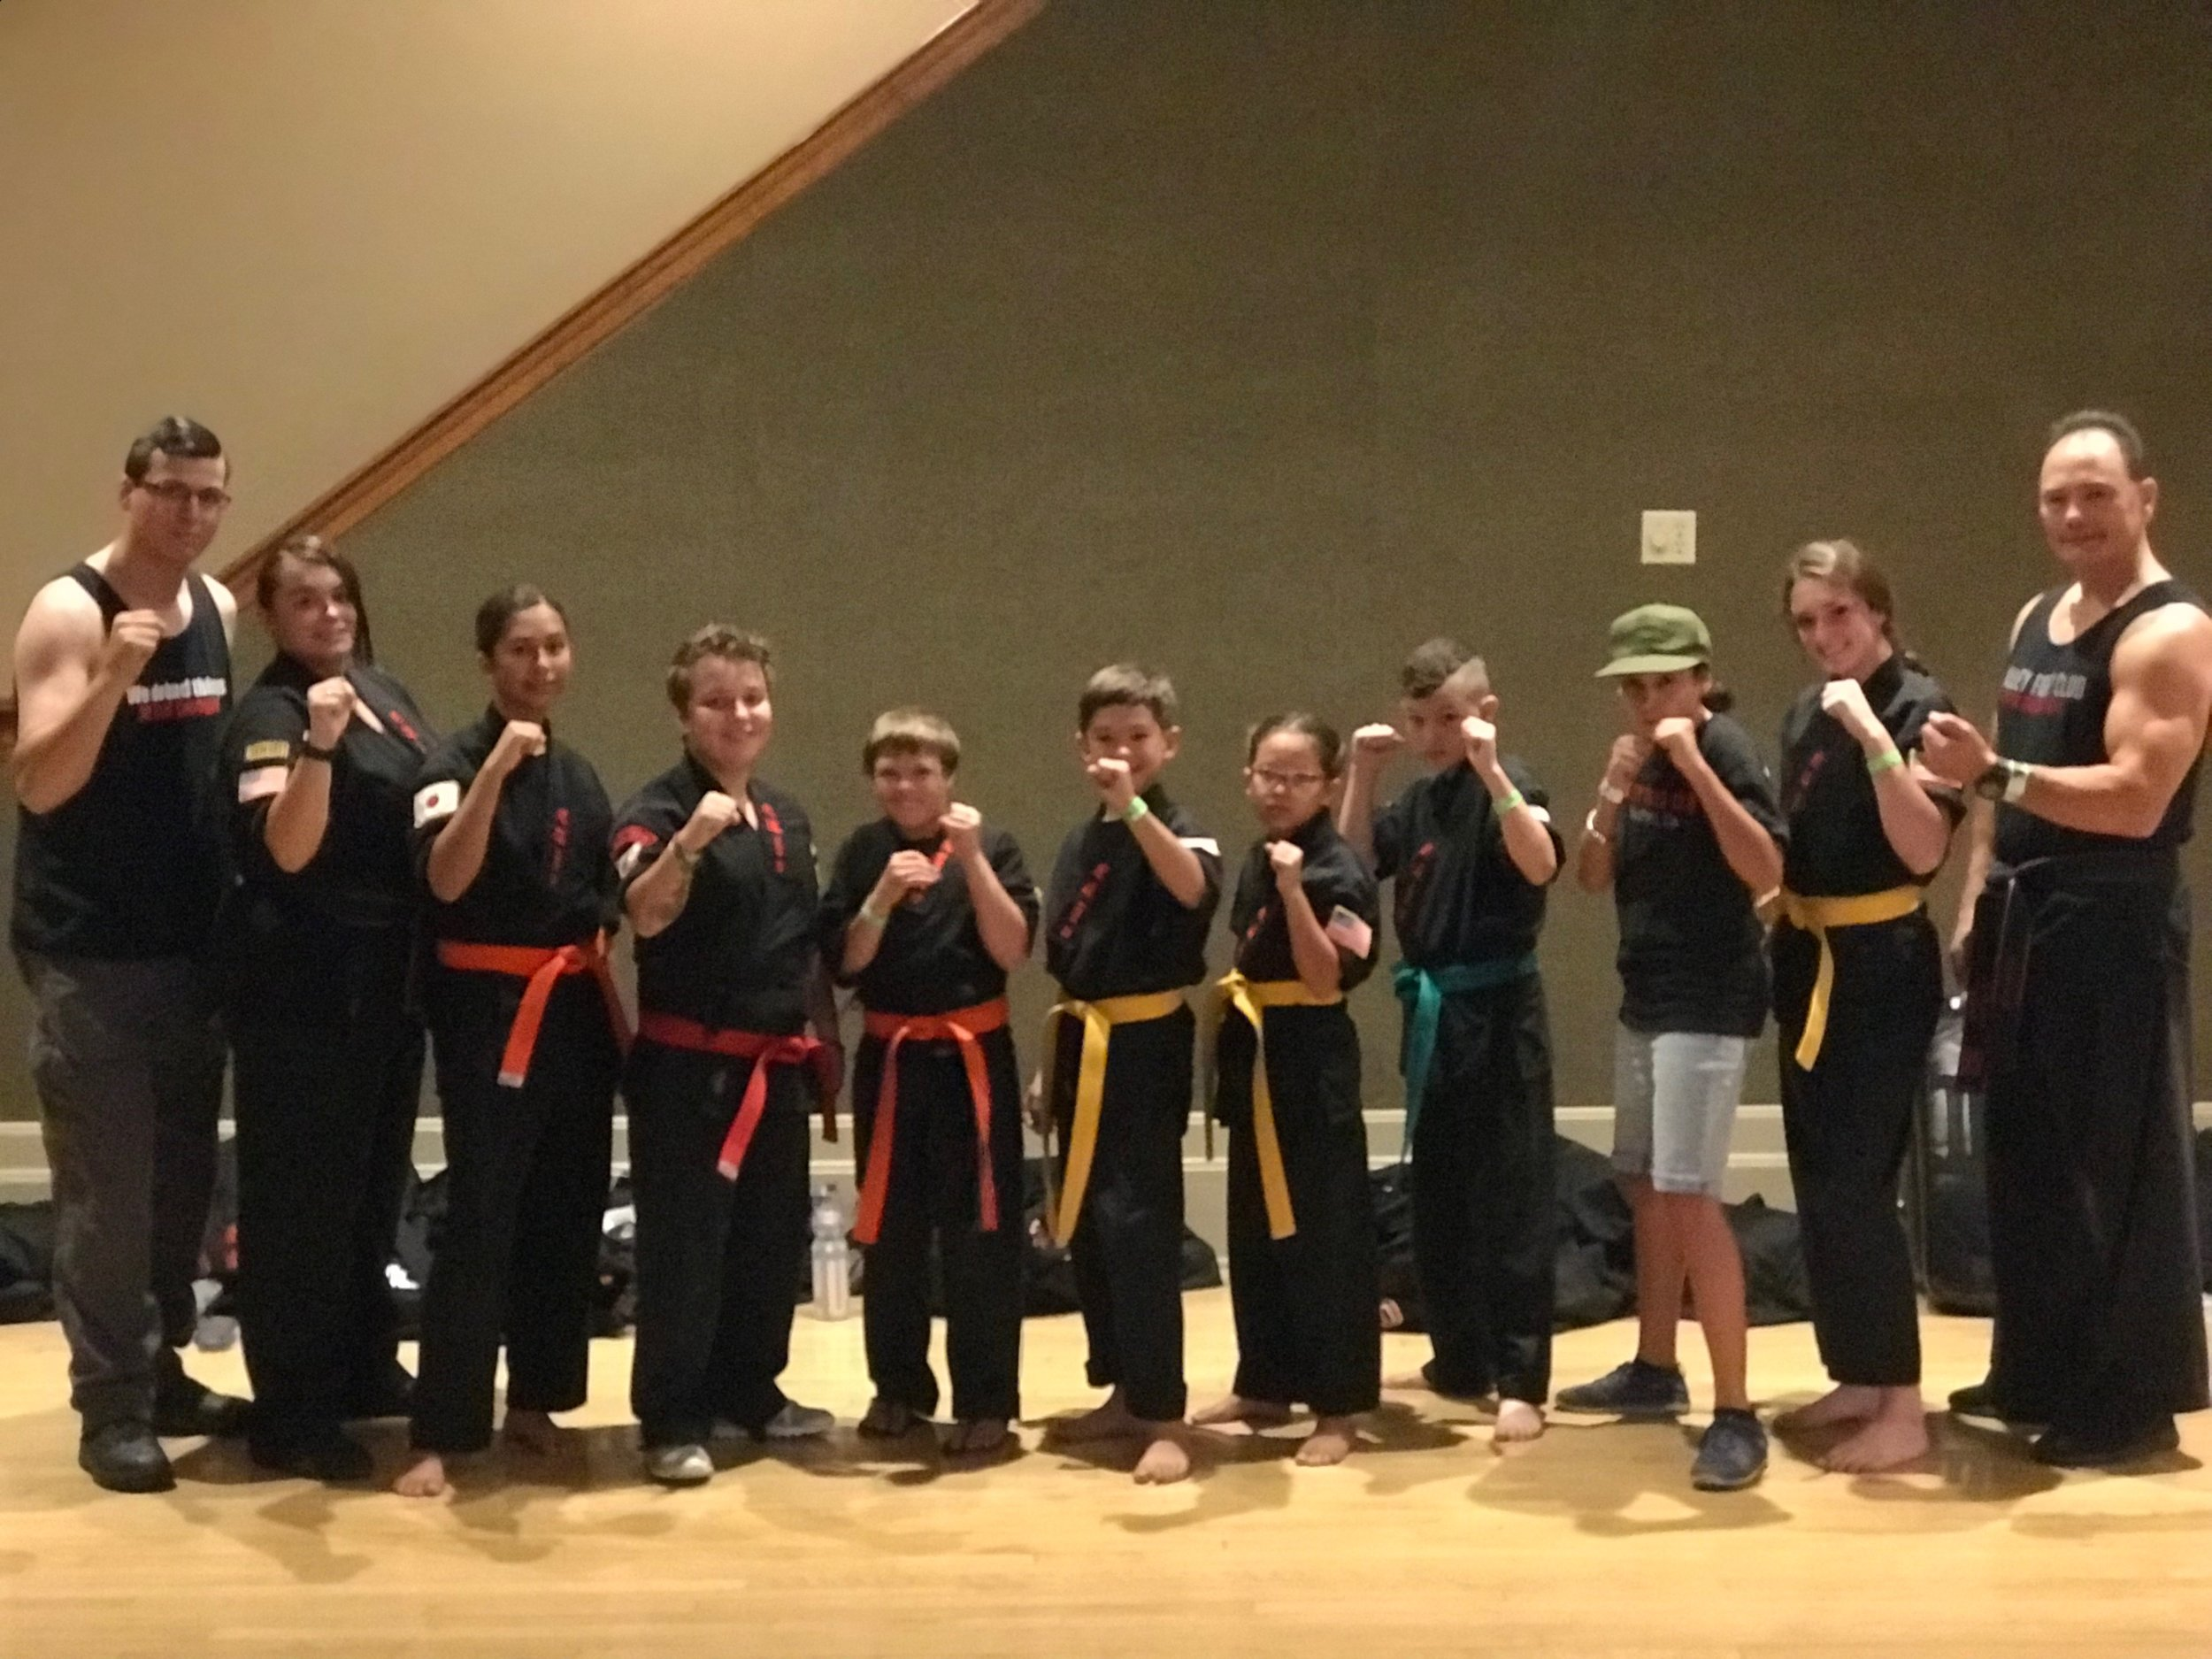 From left to right: Gage Silveira, Sensei Bailey Silveira, Citlali Diaz, Sempai Ashlyn Fagundes, Matt Wilson, Daren Deftereos, Genevive Rodrigues, Casen Lewis, Yasmine Ibrahim, Rylan Lewis, and Shihan D. Womack. (This photo was taken upon arrival and before competition had begun)